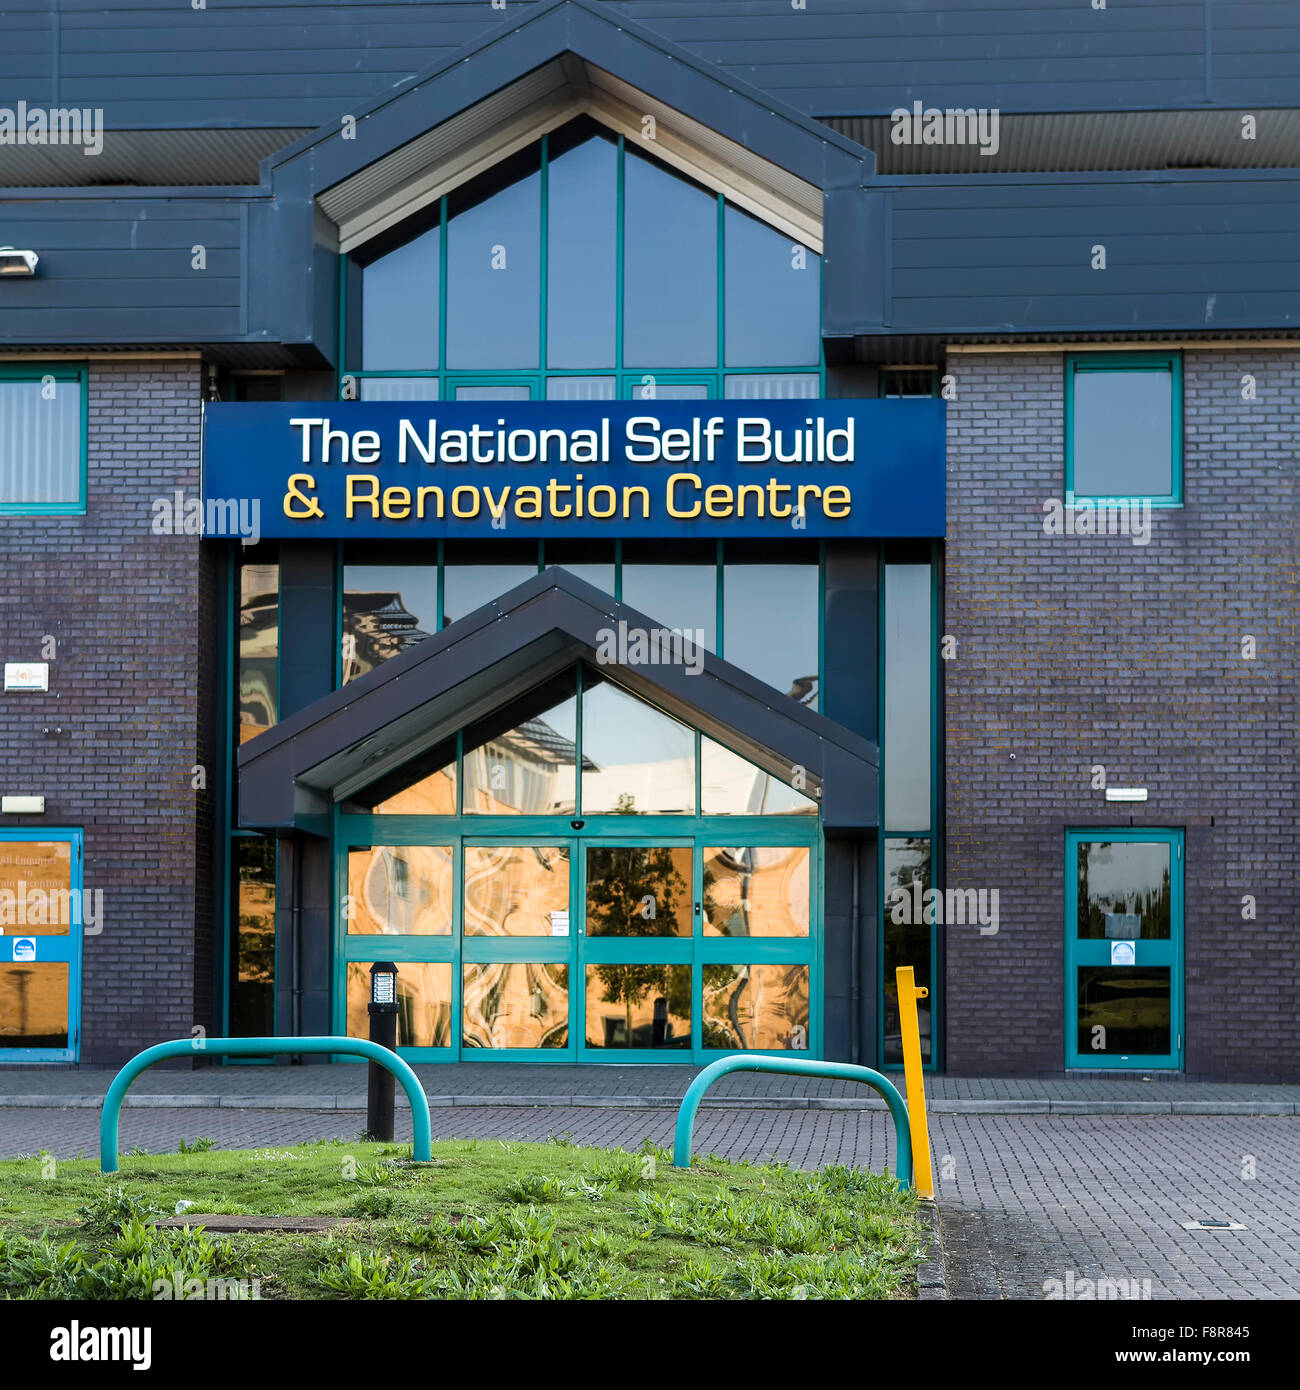 National Self Build And Renovation Centre in Swindon Wiltshire - Stock Image